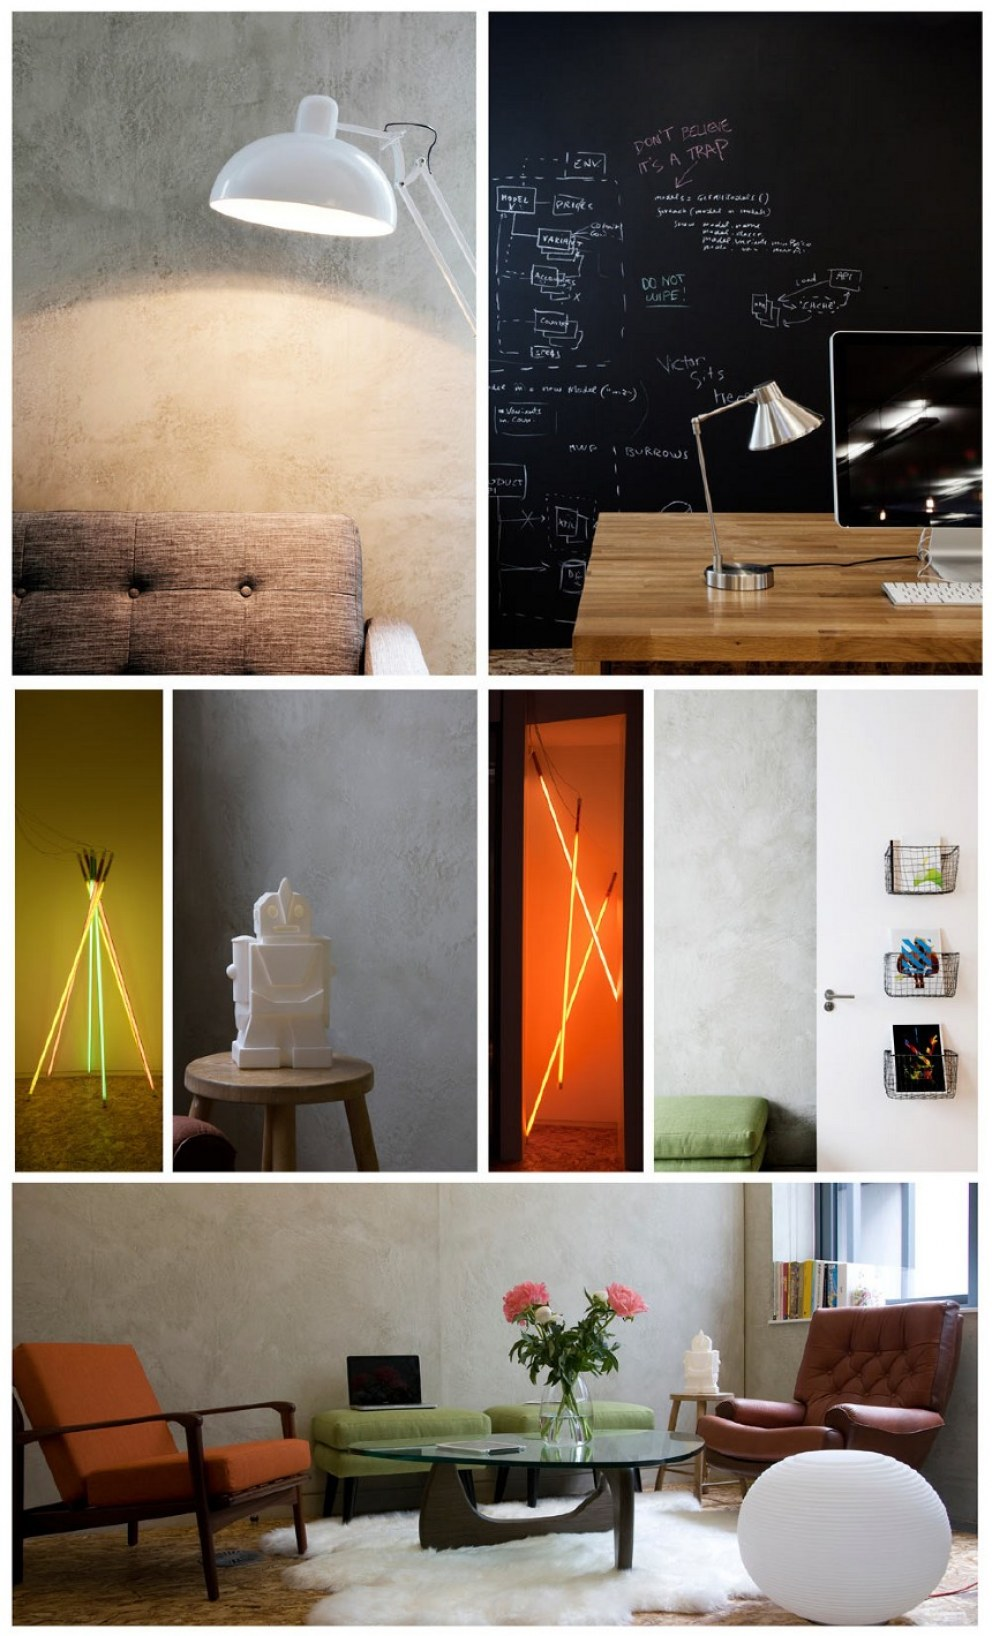 Commercial creative workspace design creative agency for Creative interior design agency